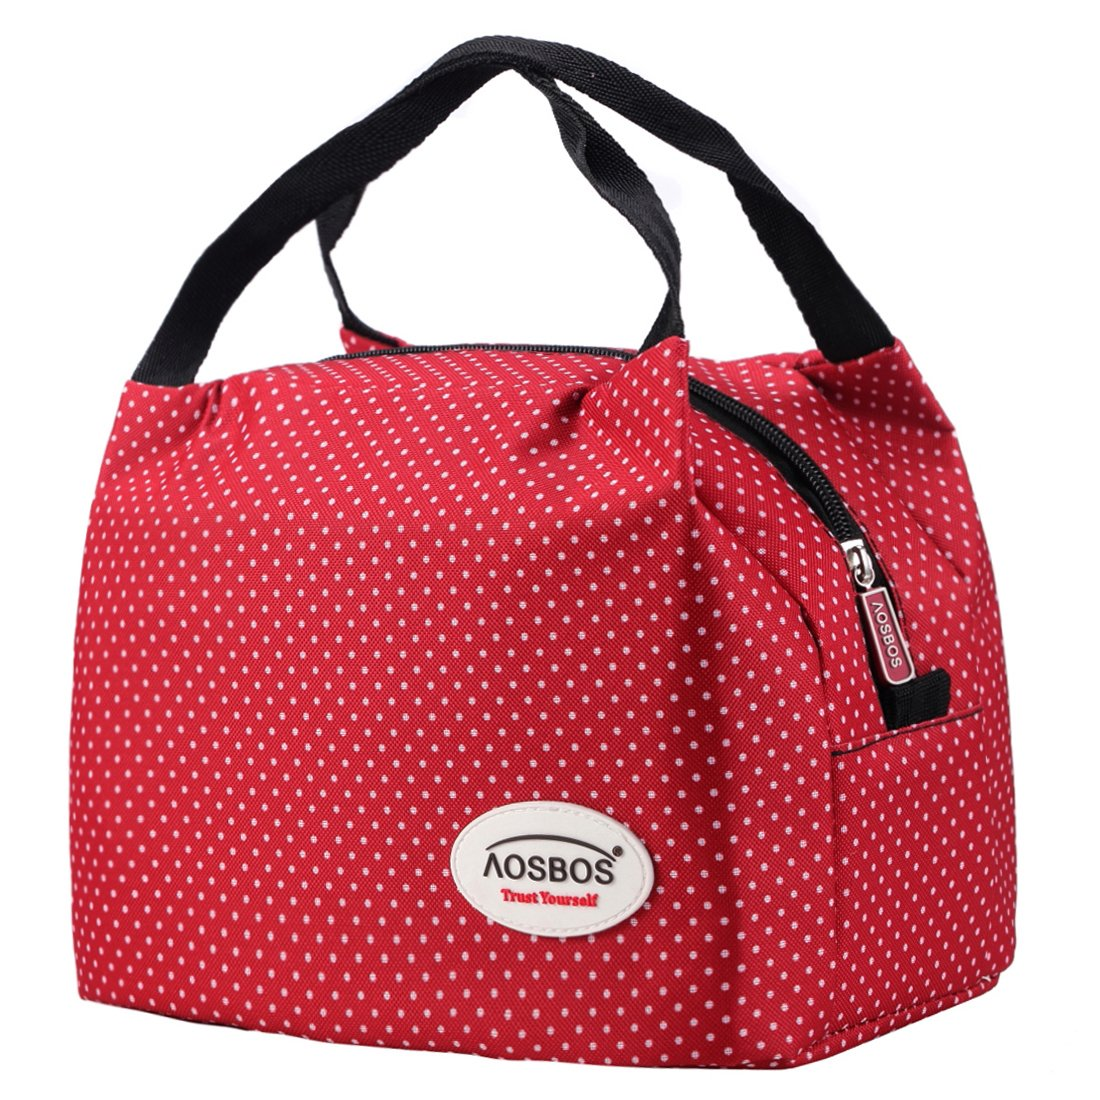 Aosbos Recycled Insulated Lunch Box Tote Cooler Bag Polka Dots Red Amazoncouk Kitchen Home